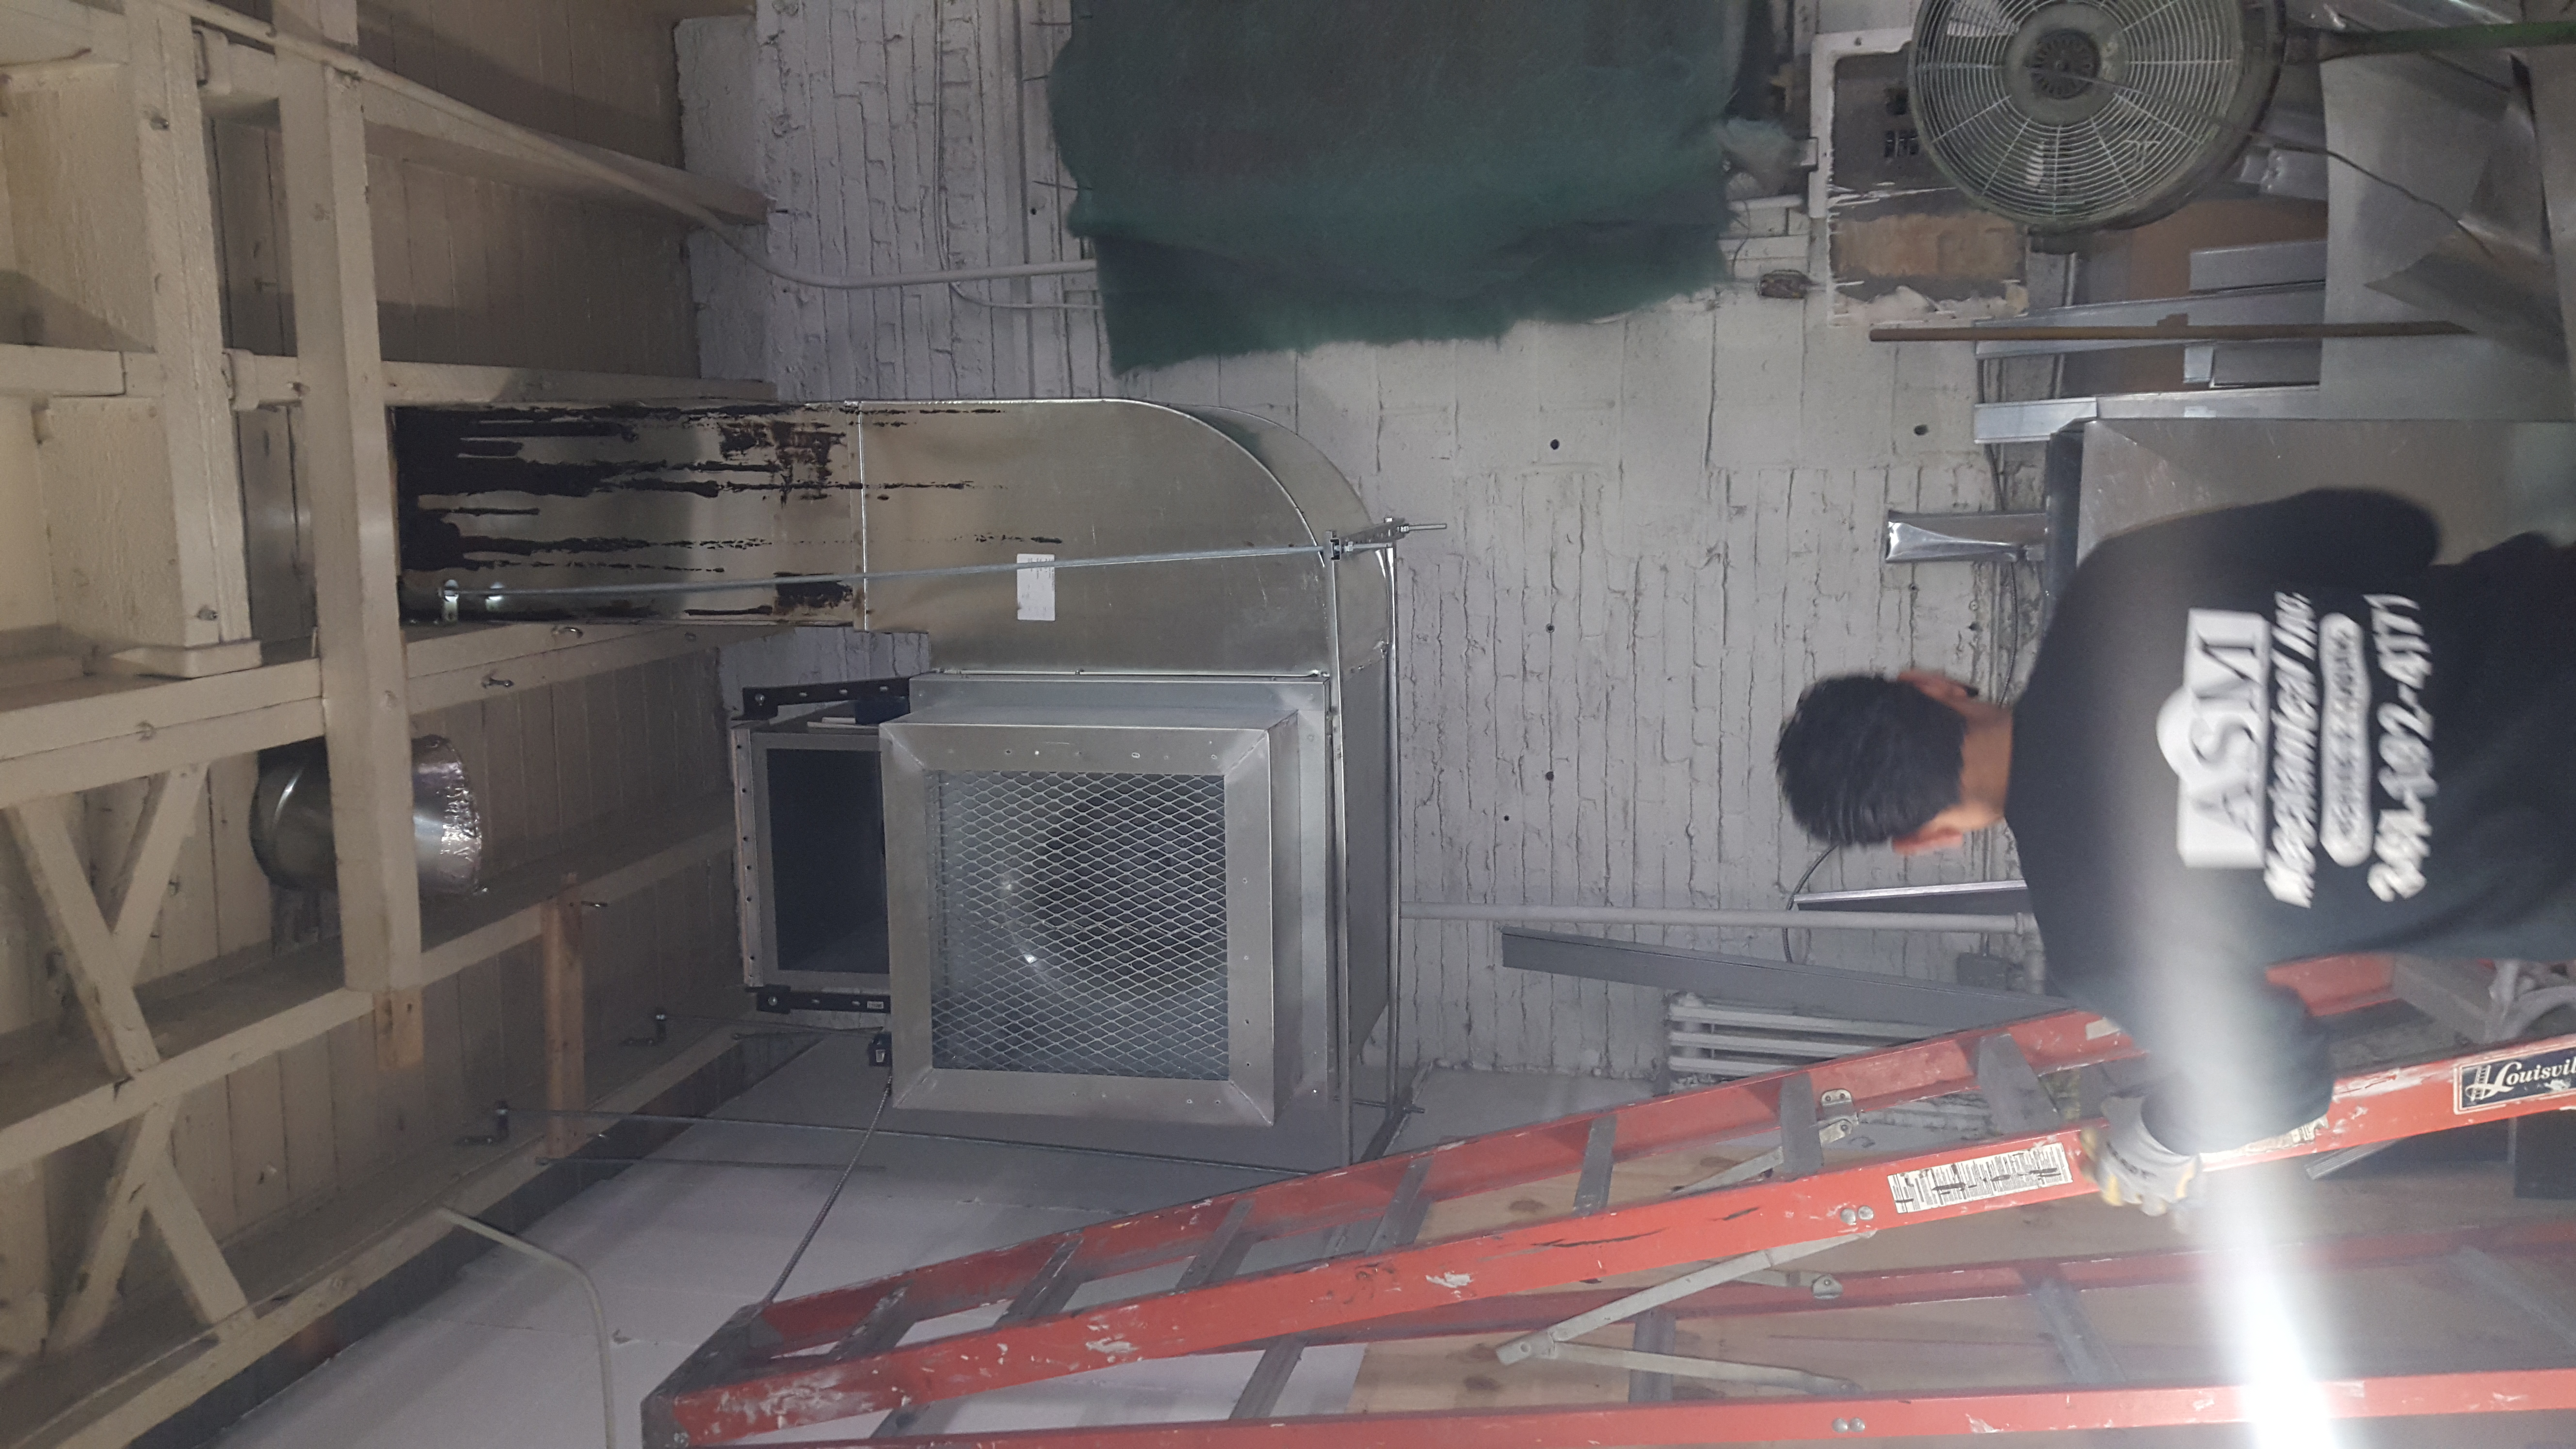 sizing exhaust fan for auto body shop — Heating Help: The Wall